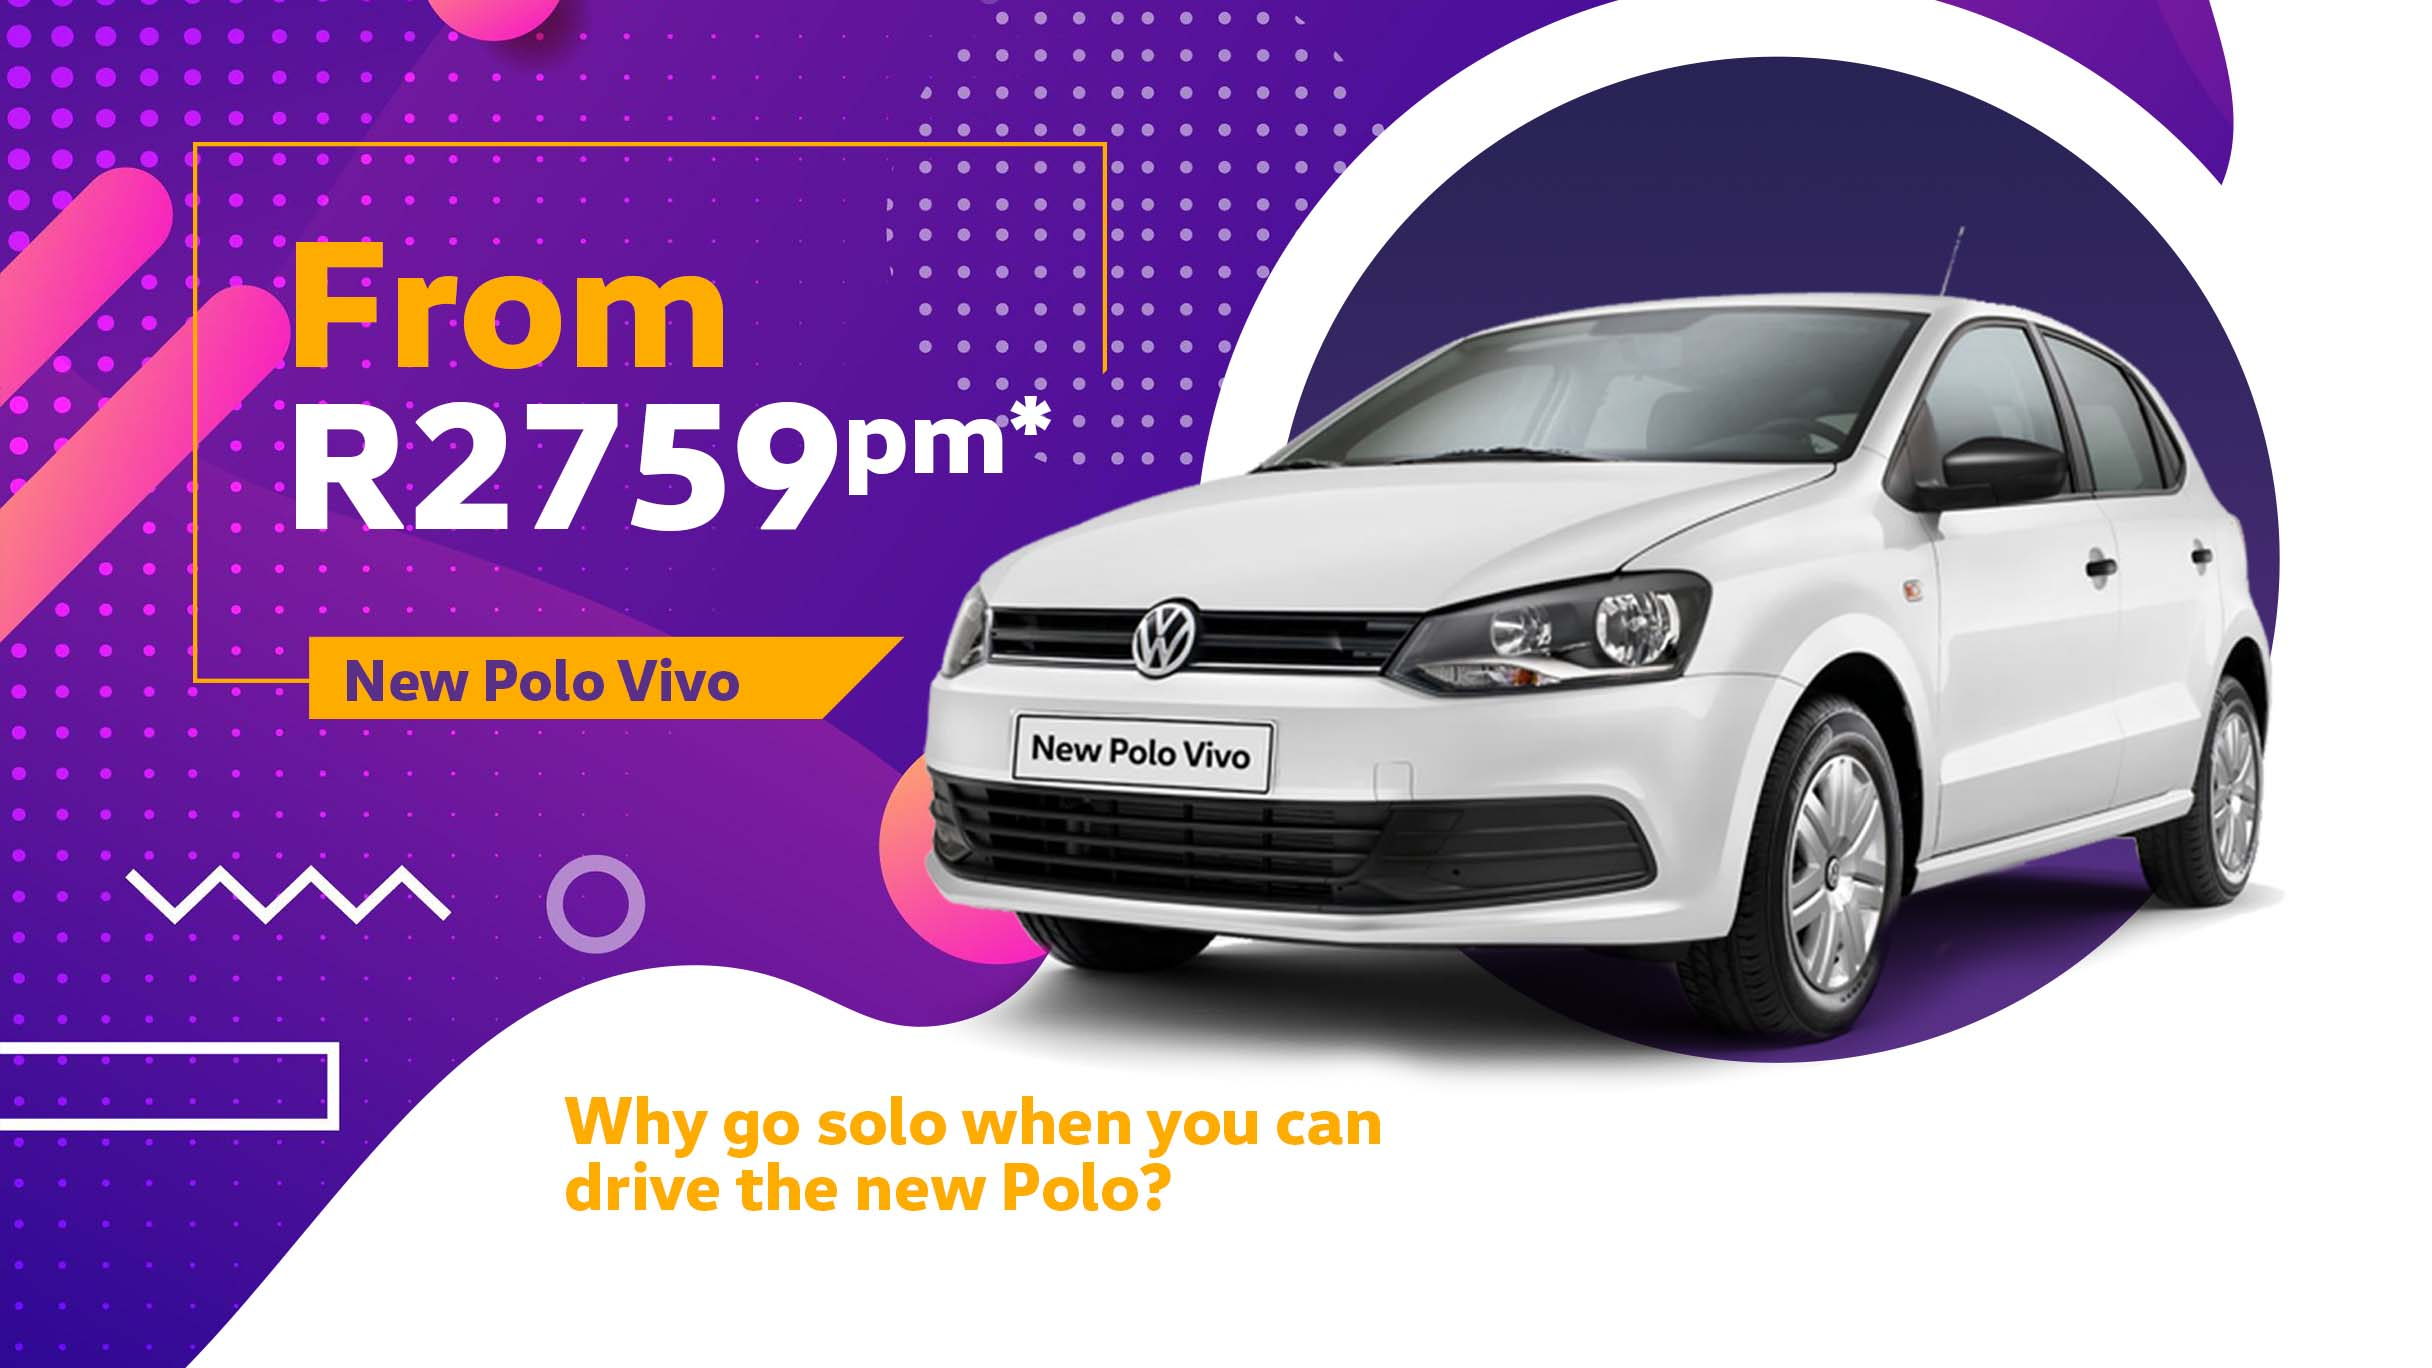 Polo Vivo new car offer Barons Pietermaritzburg